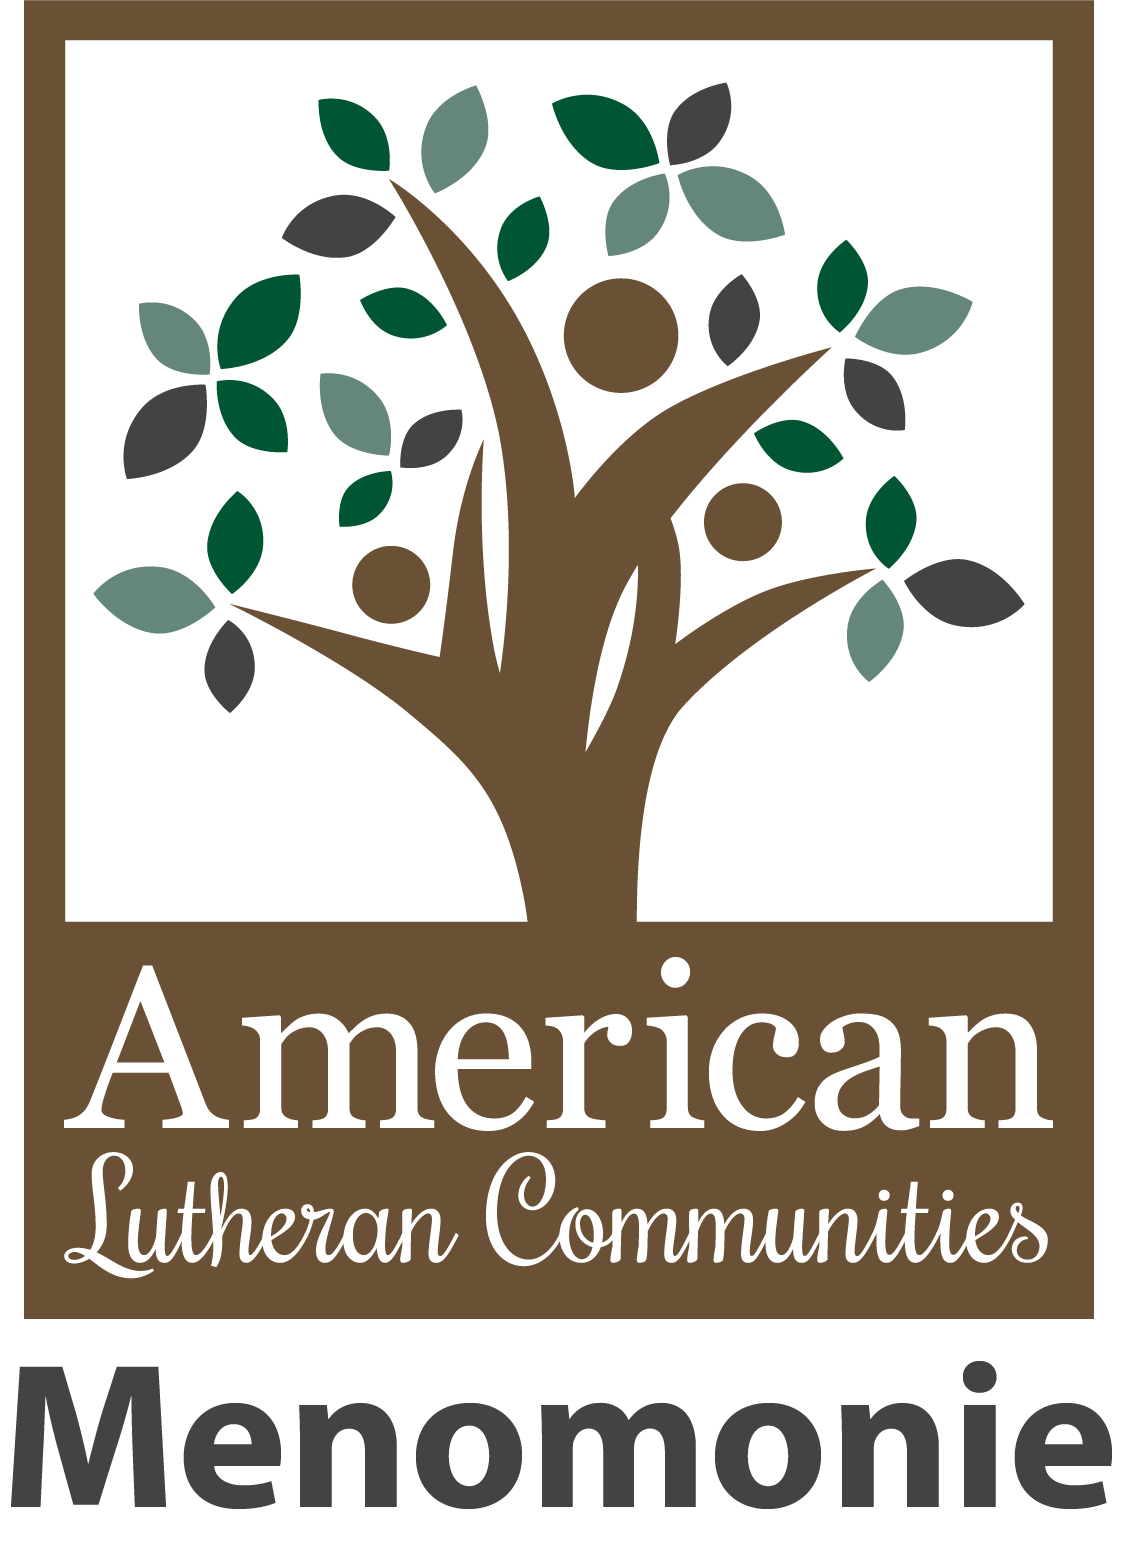 American Lutheran Home - Meomonie